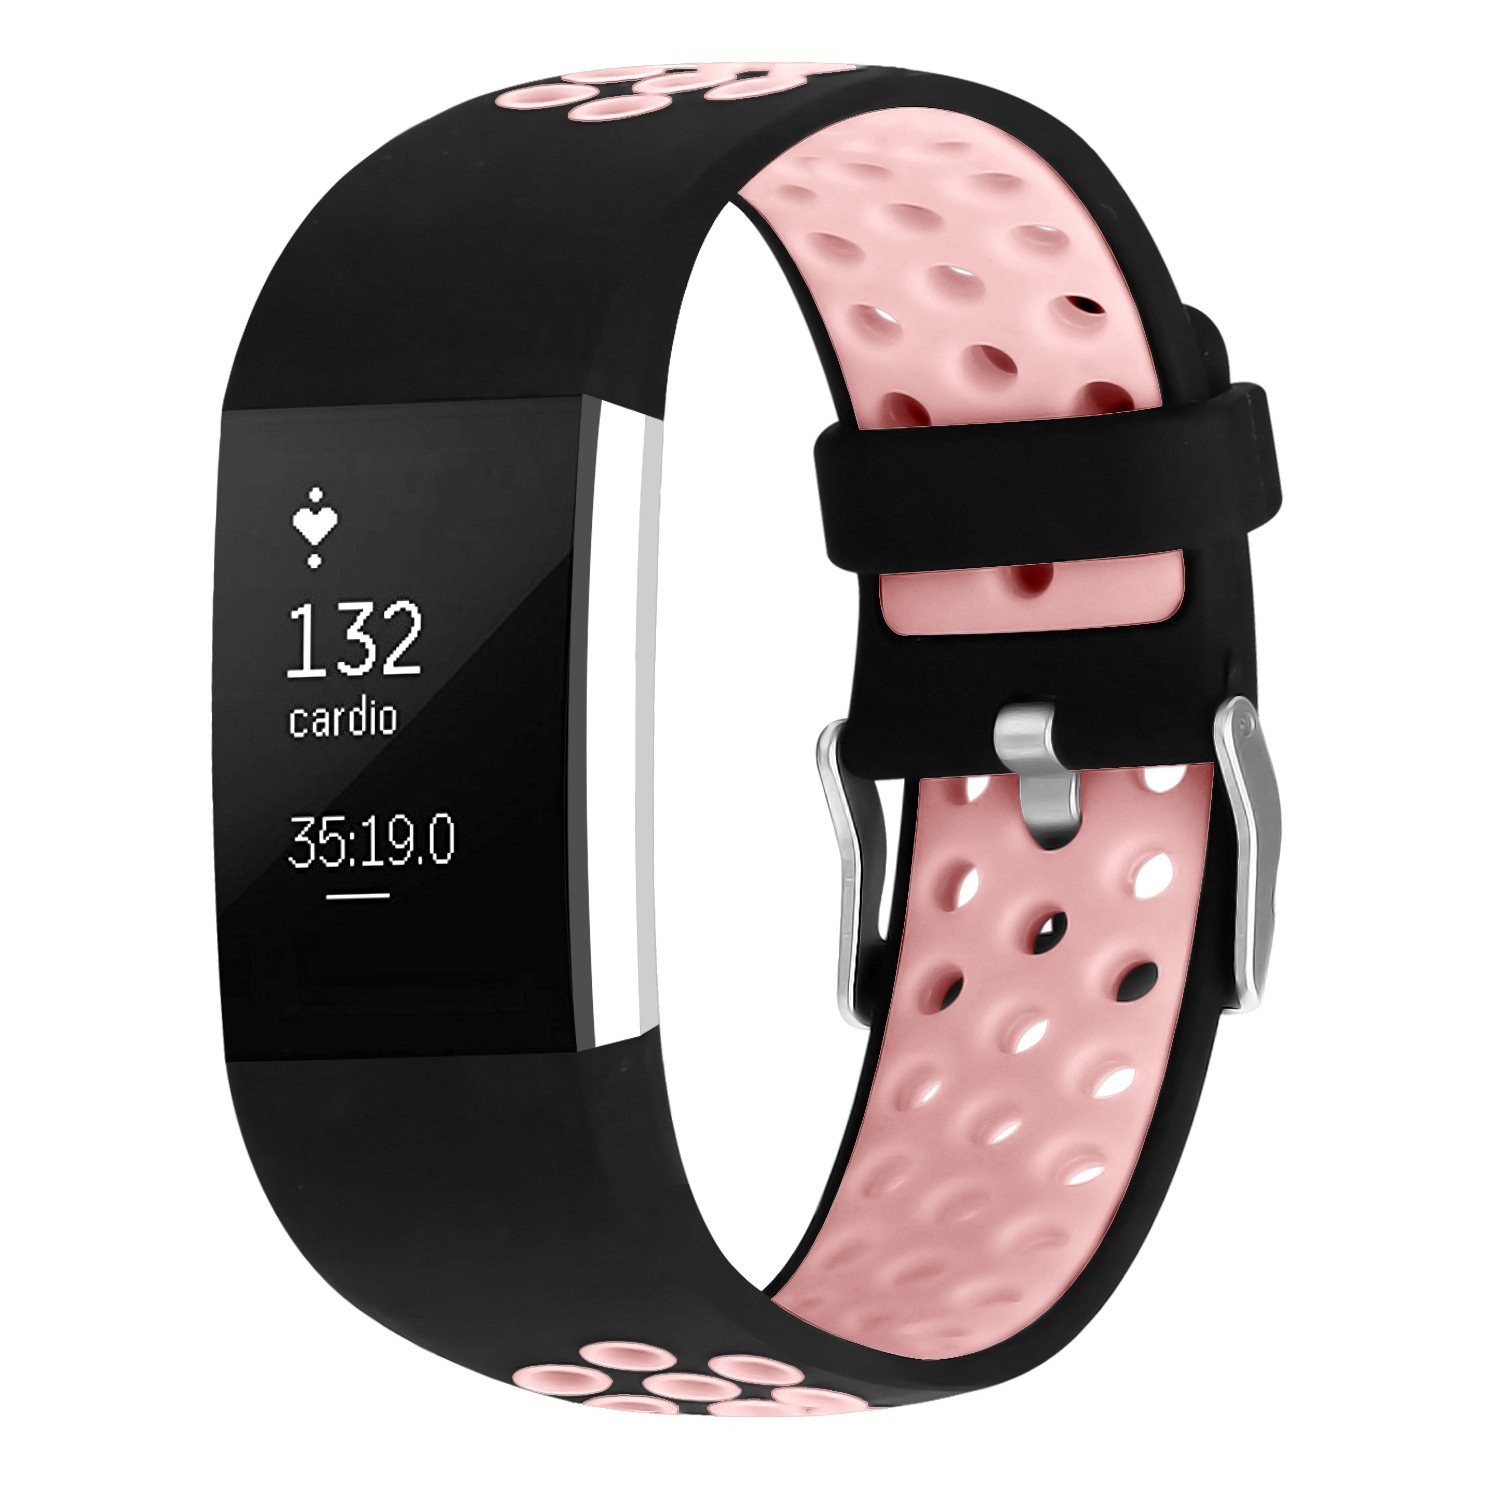 iGK Fitbit Charge 2 Bands Soft Silicone Adjustable Replacement Sport